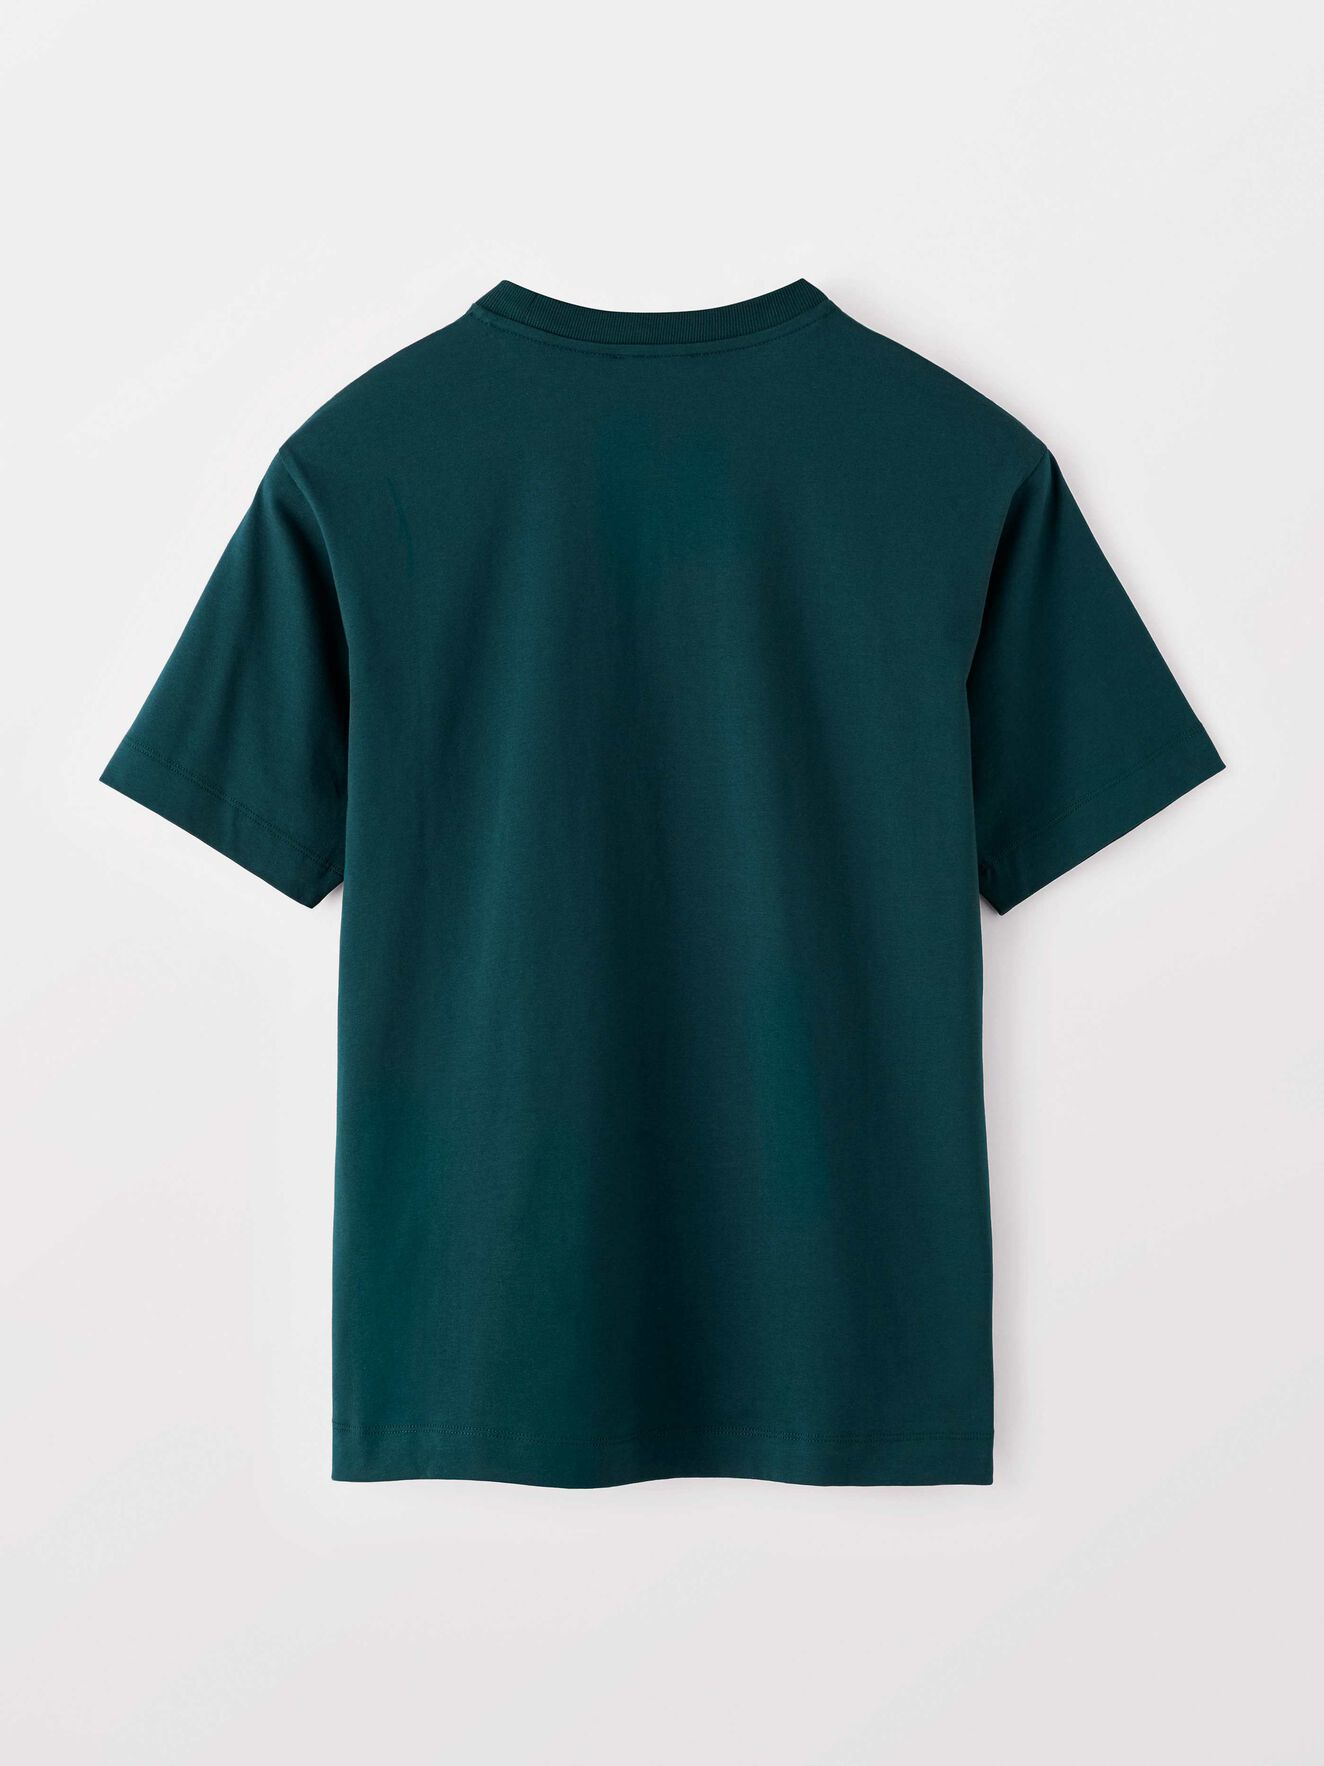 Dellana T-Shirt in Dark Forest from Tiger of Sweden